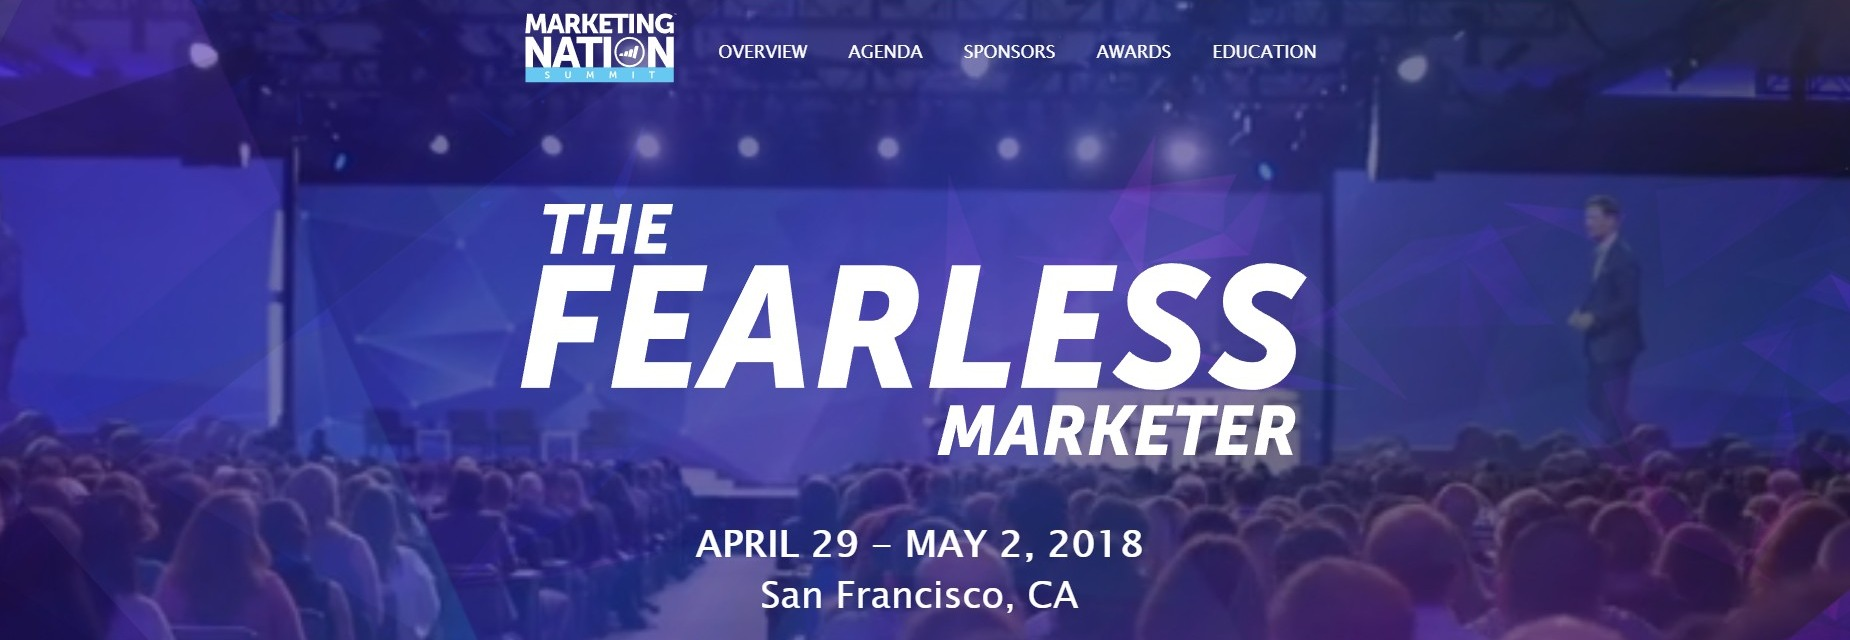 788556798_ScreenshotofTheMarketingNationSummit,April29-May2,2018%E2%80%93Marketo-Home.jpg